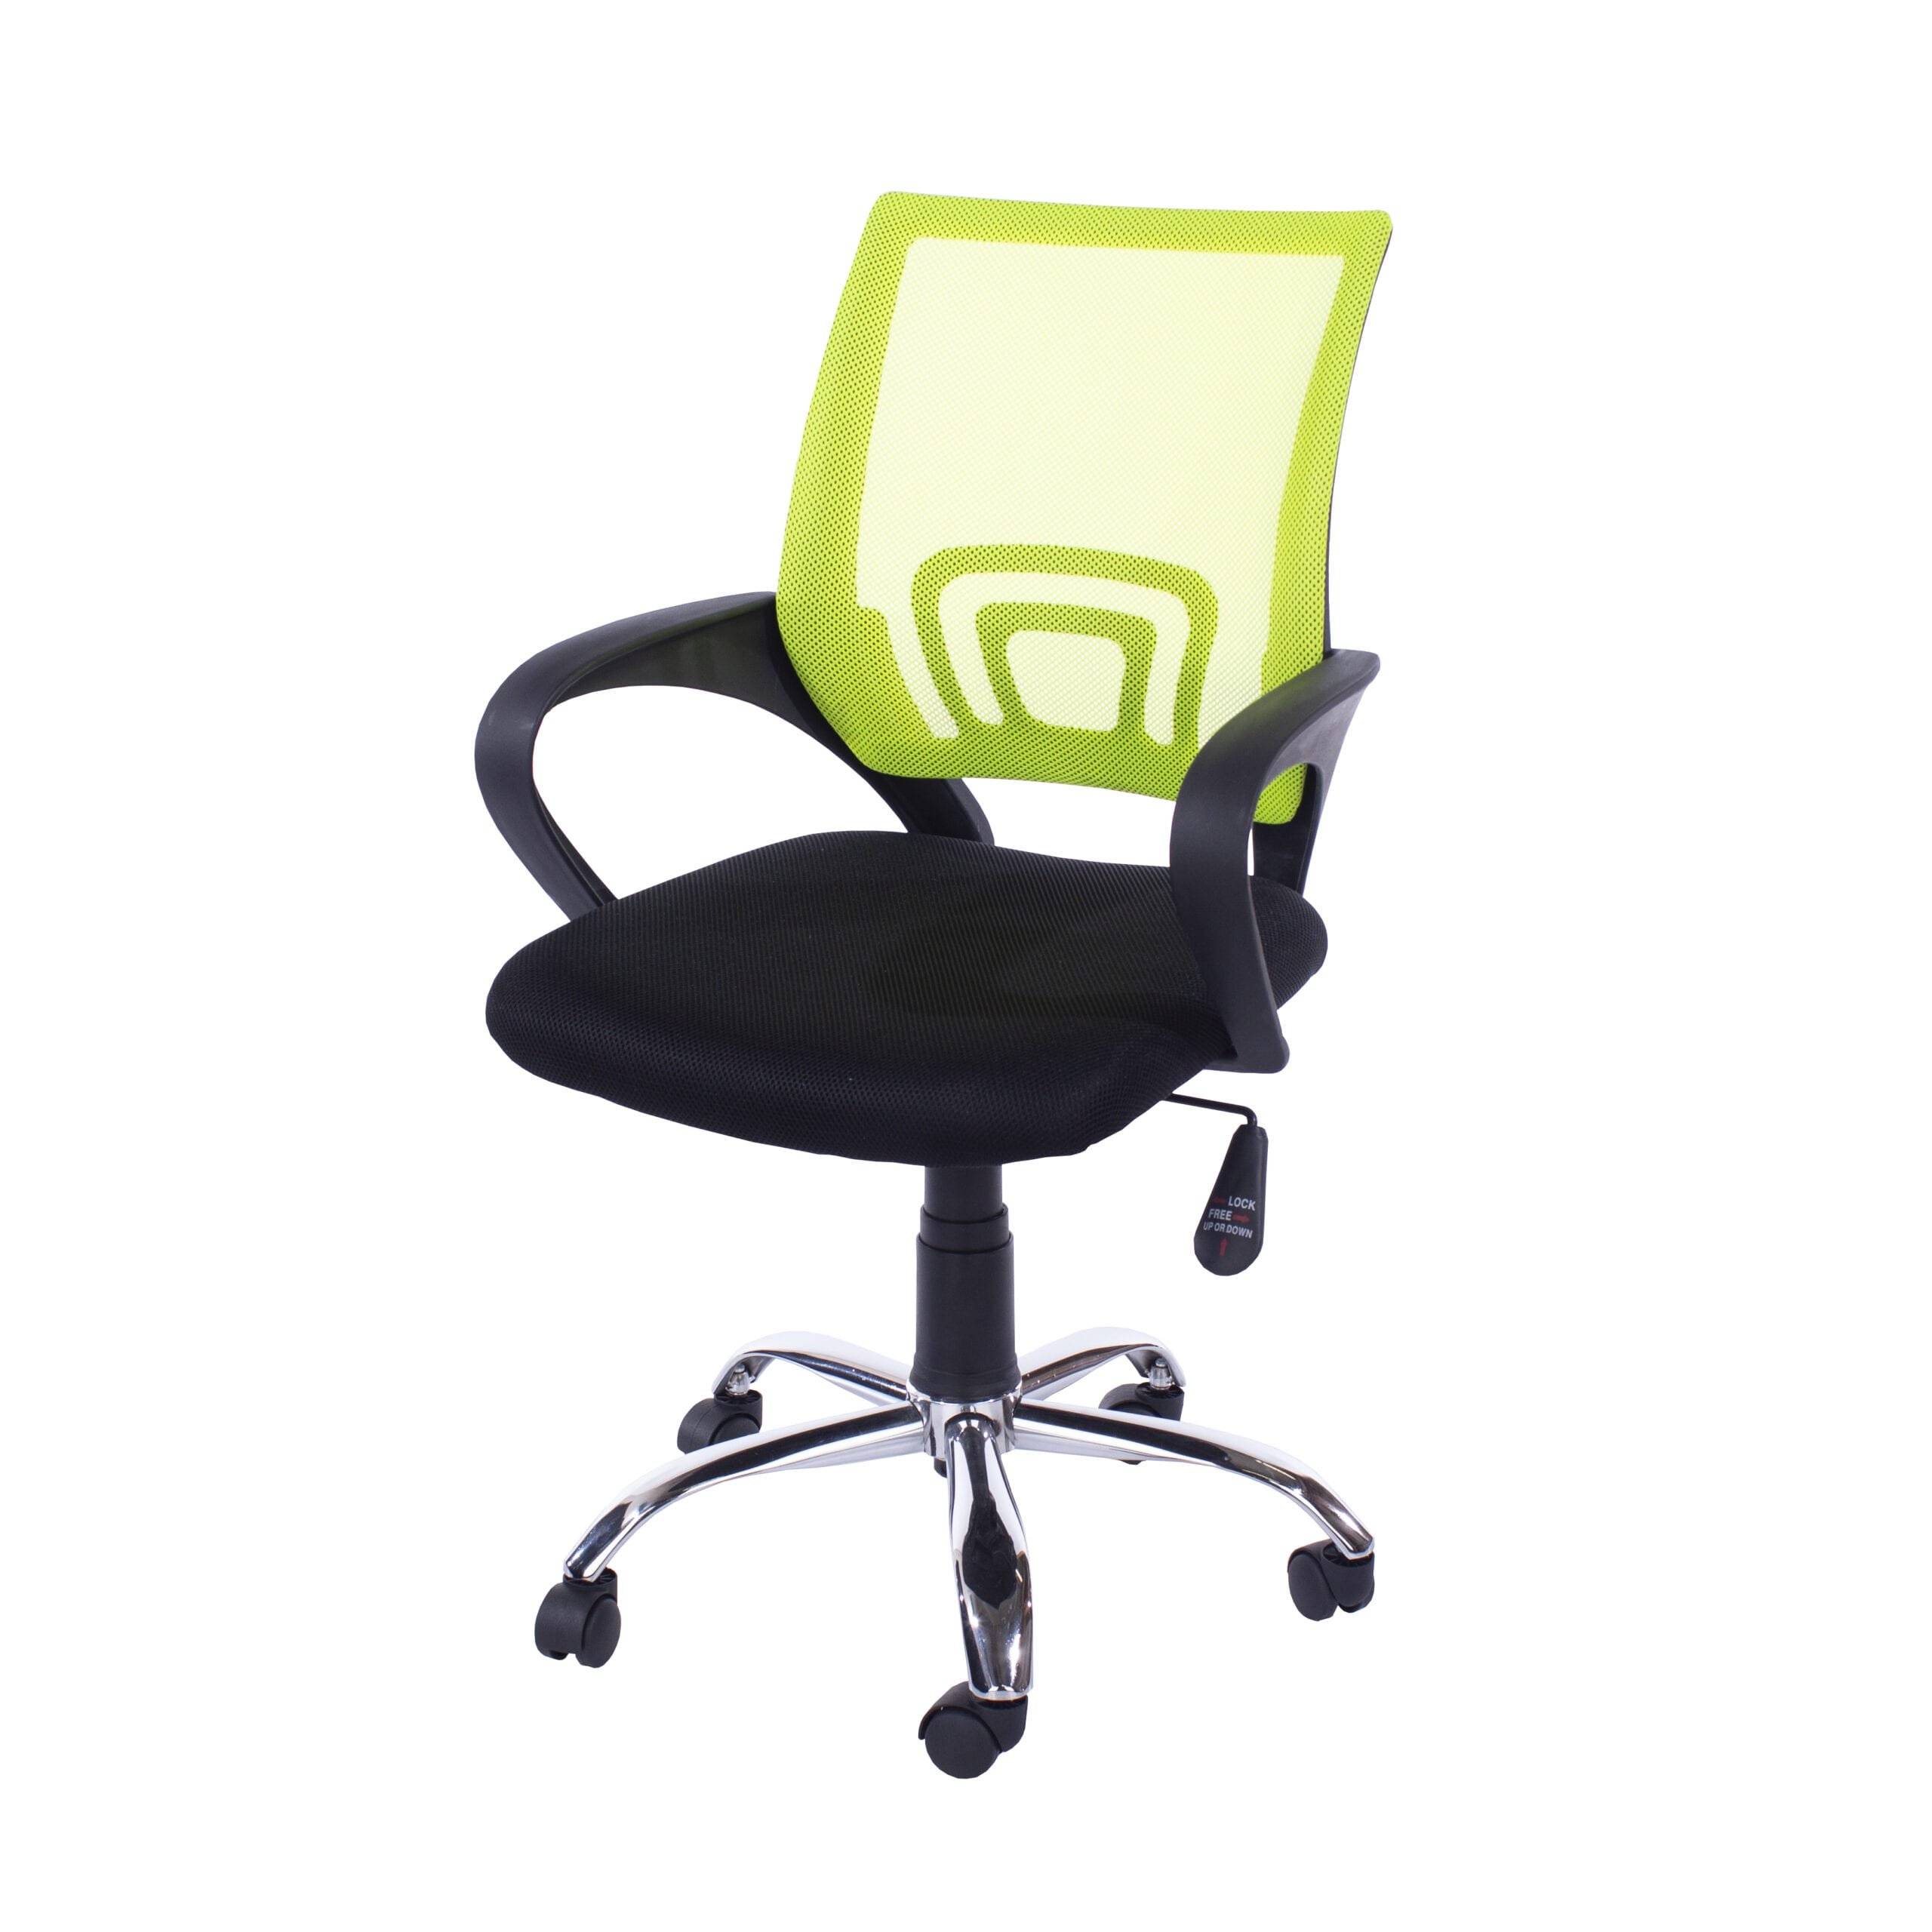 Lust study chair in lime green mesh black fabric & chrome base